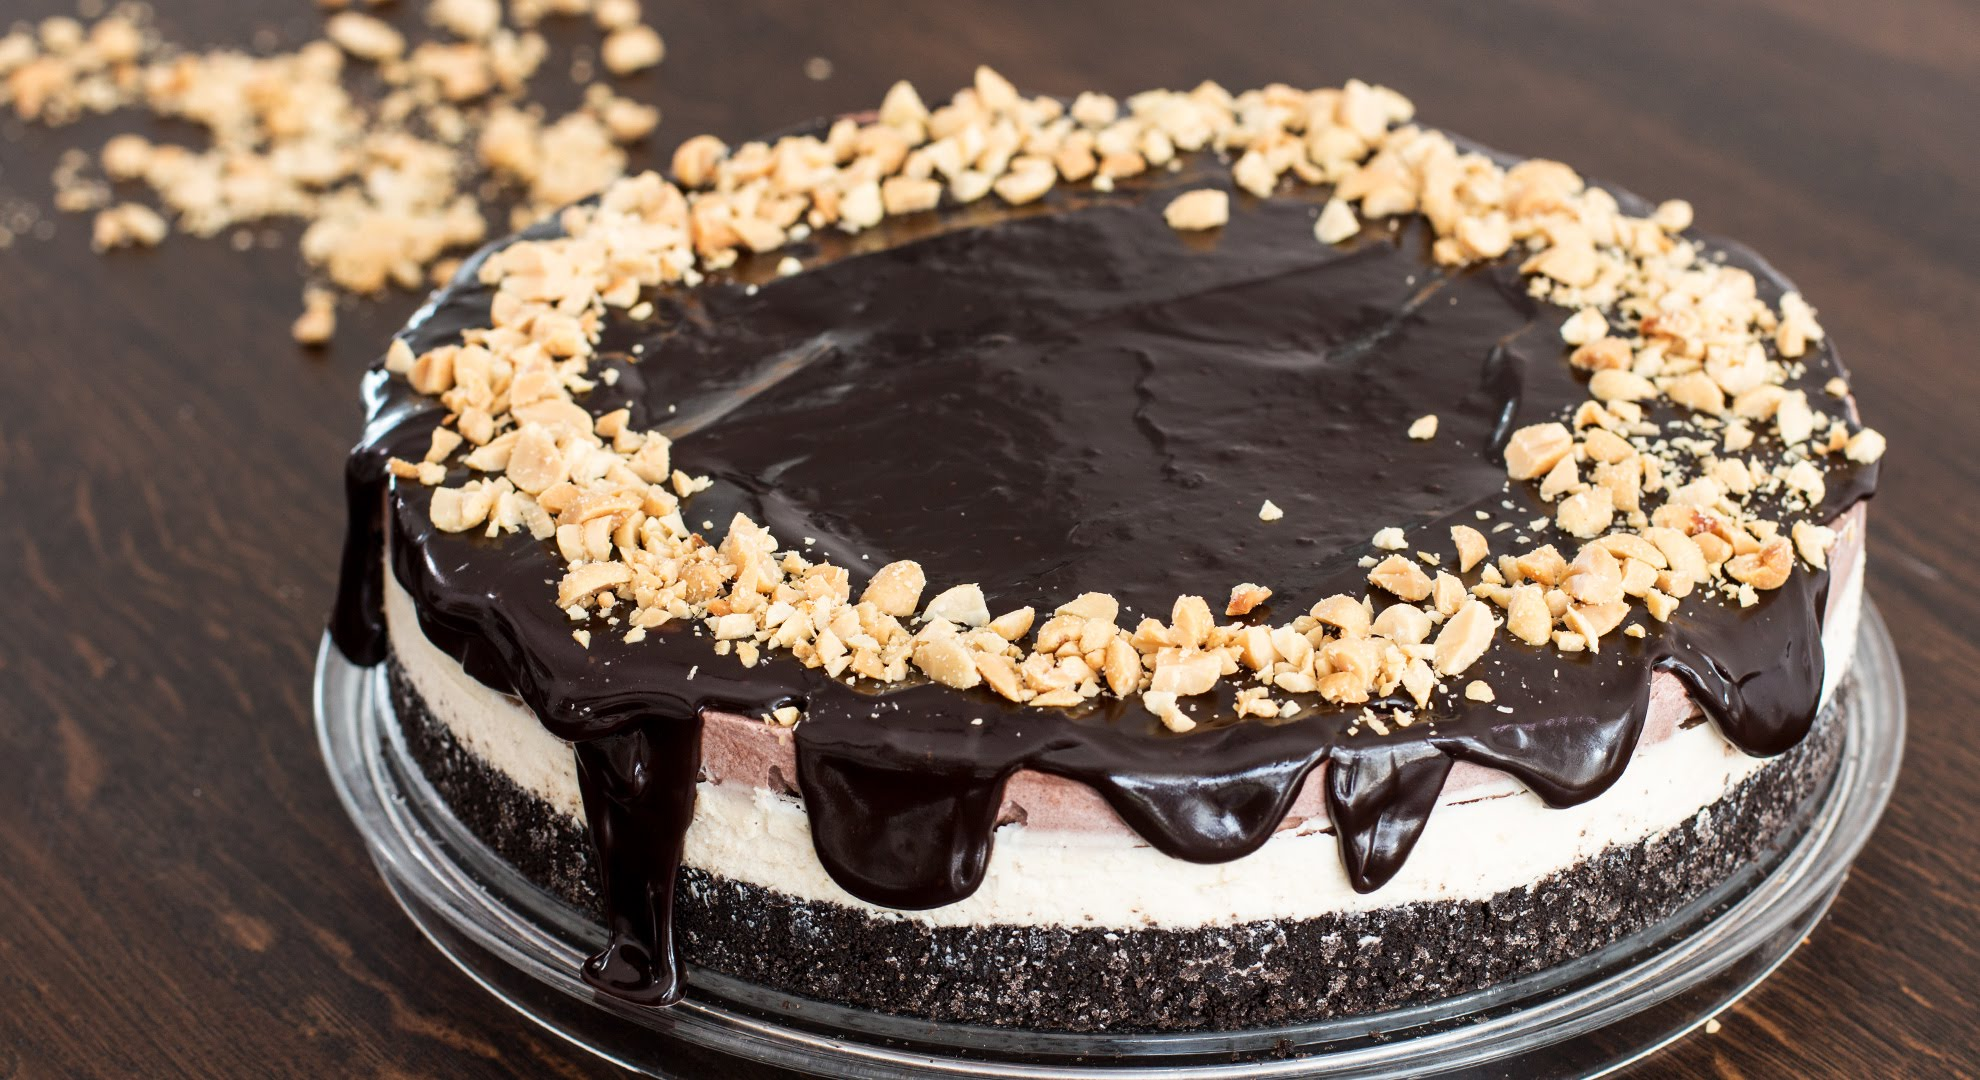 A No-Bake Chocolate Peanut Butter Ice Cream Cake